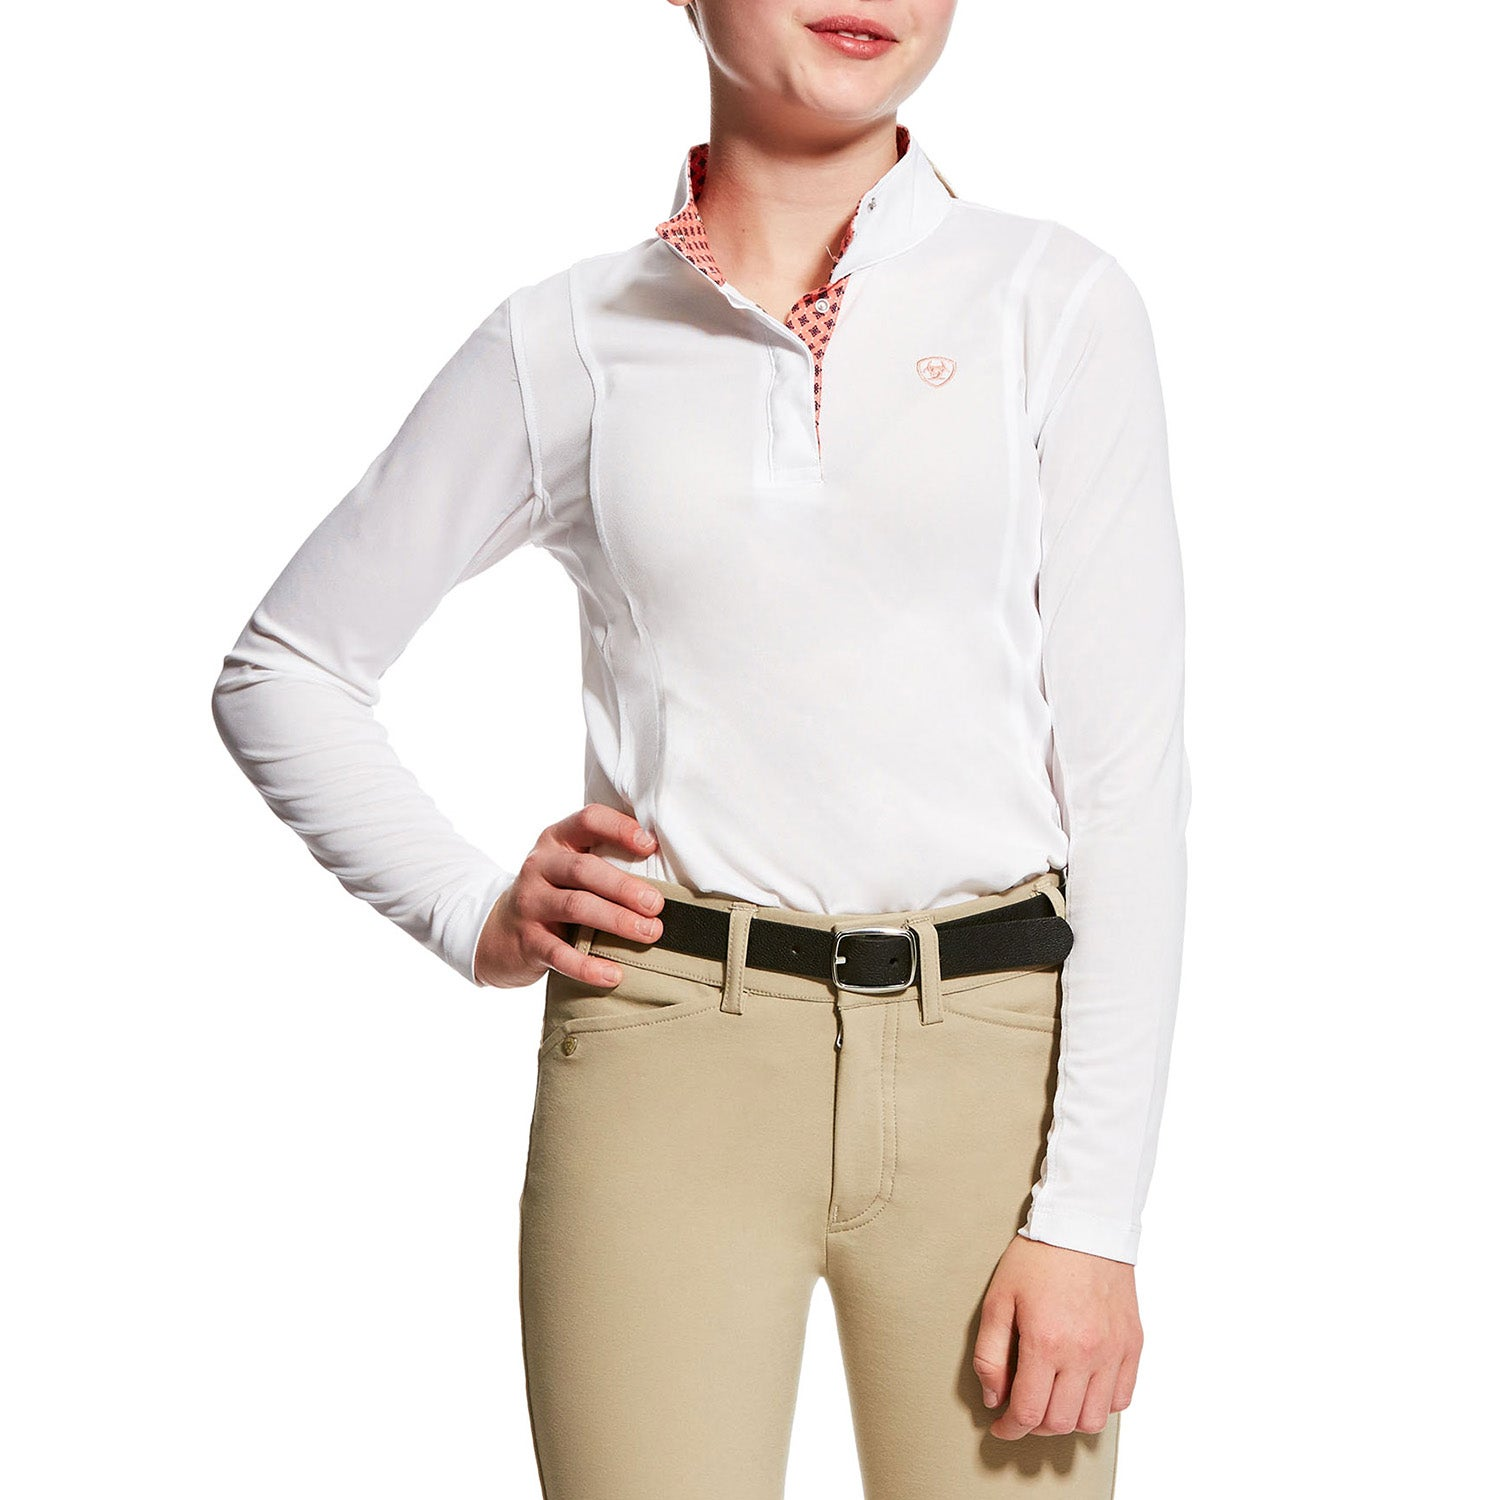 Ariat Sunstopper Competition Shirt